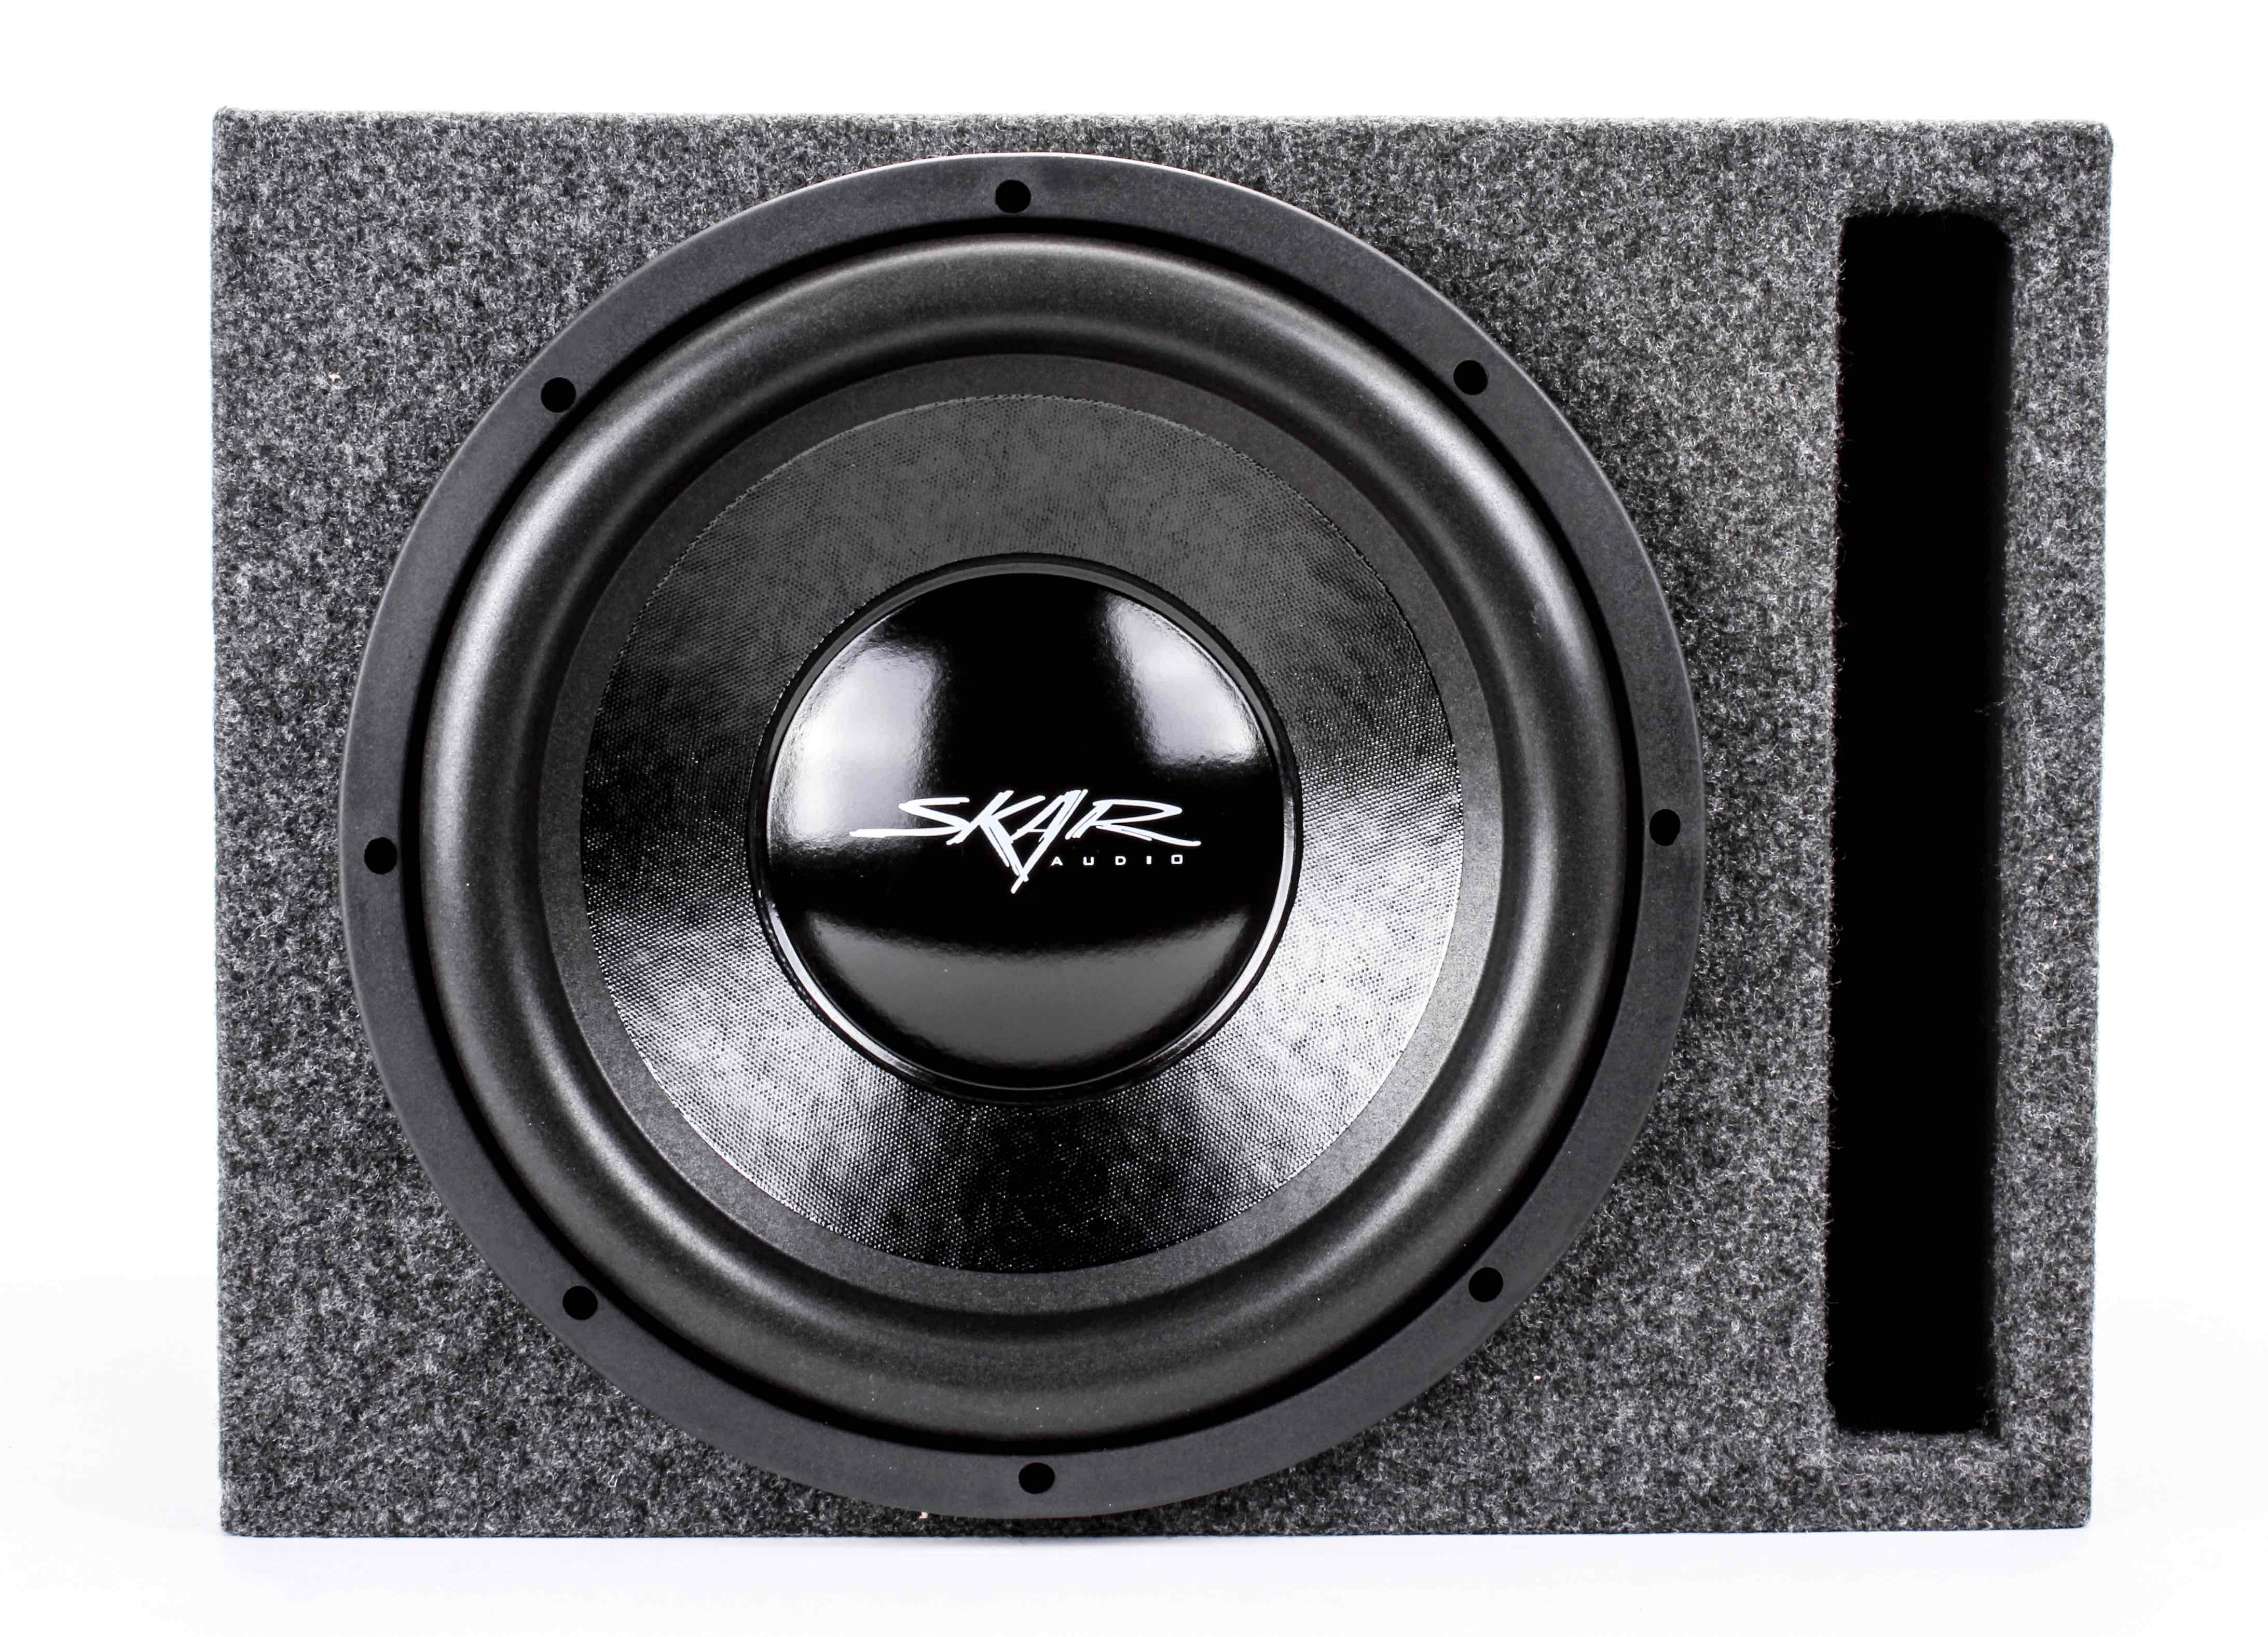 skar audio single vented watt complete car stereo 500 watt complete car subwoofer package 12 inch subwoofer in ported box amplifier and wiring kit